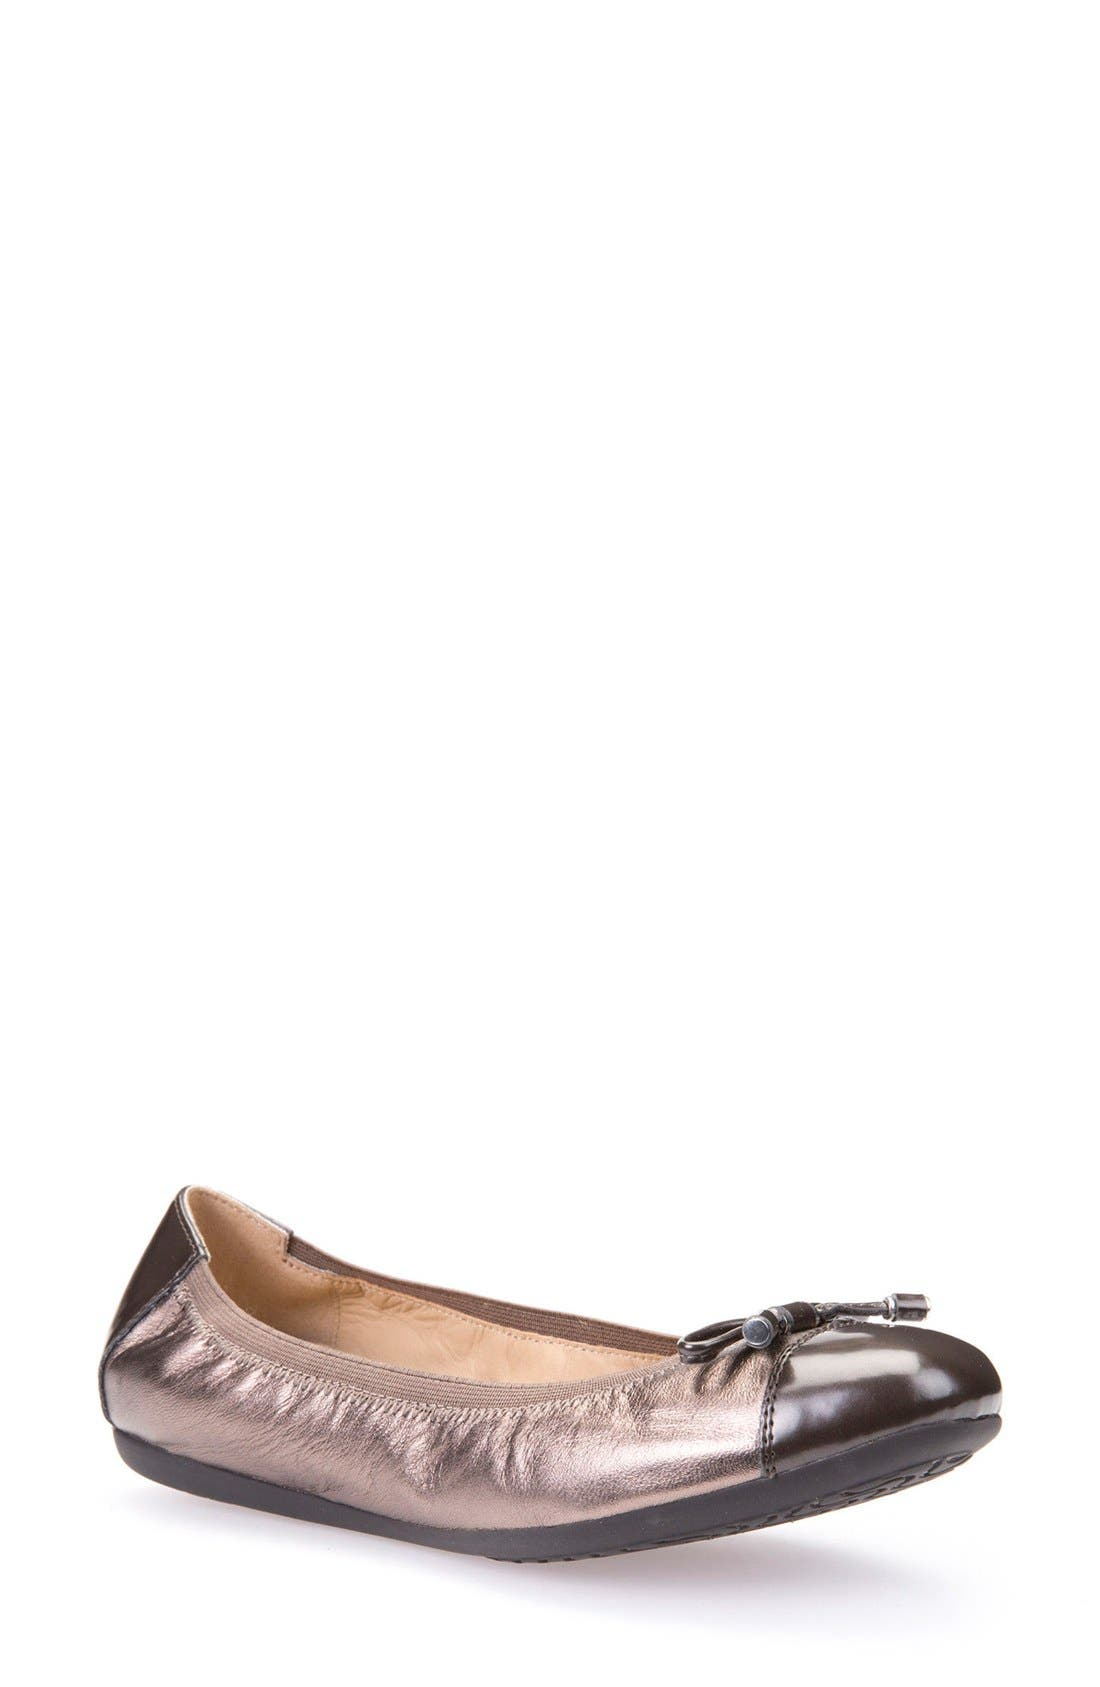 Alternate Image 1 Selected - Geox Lola Fit Cap Toe Ballet Flat (Women)